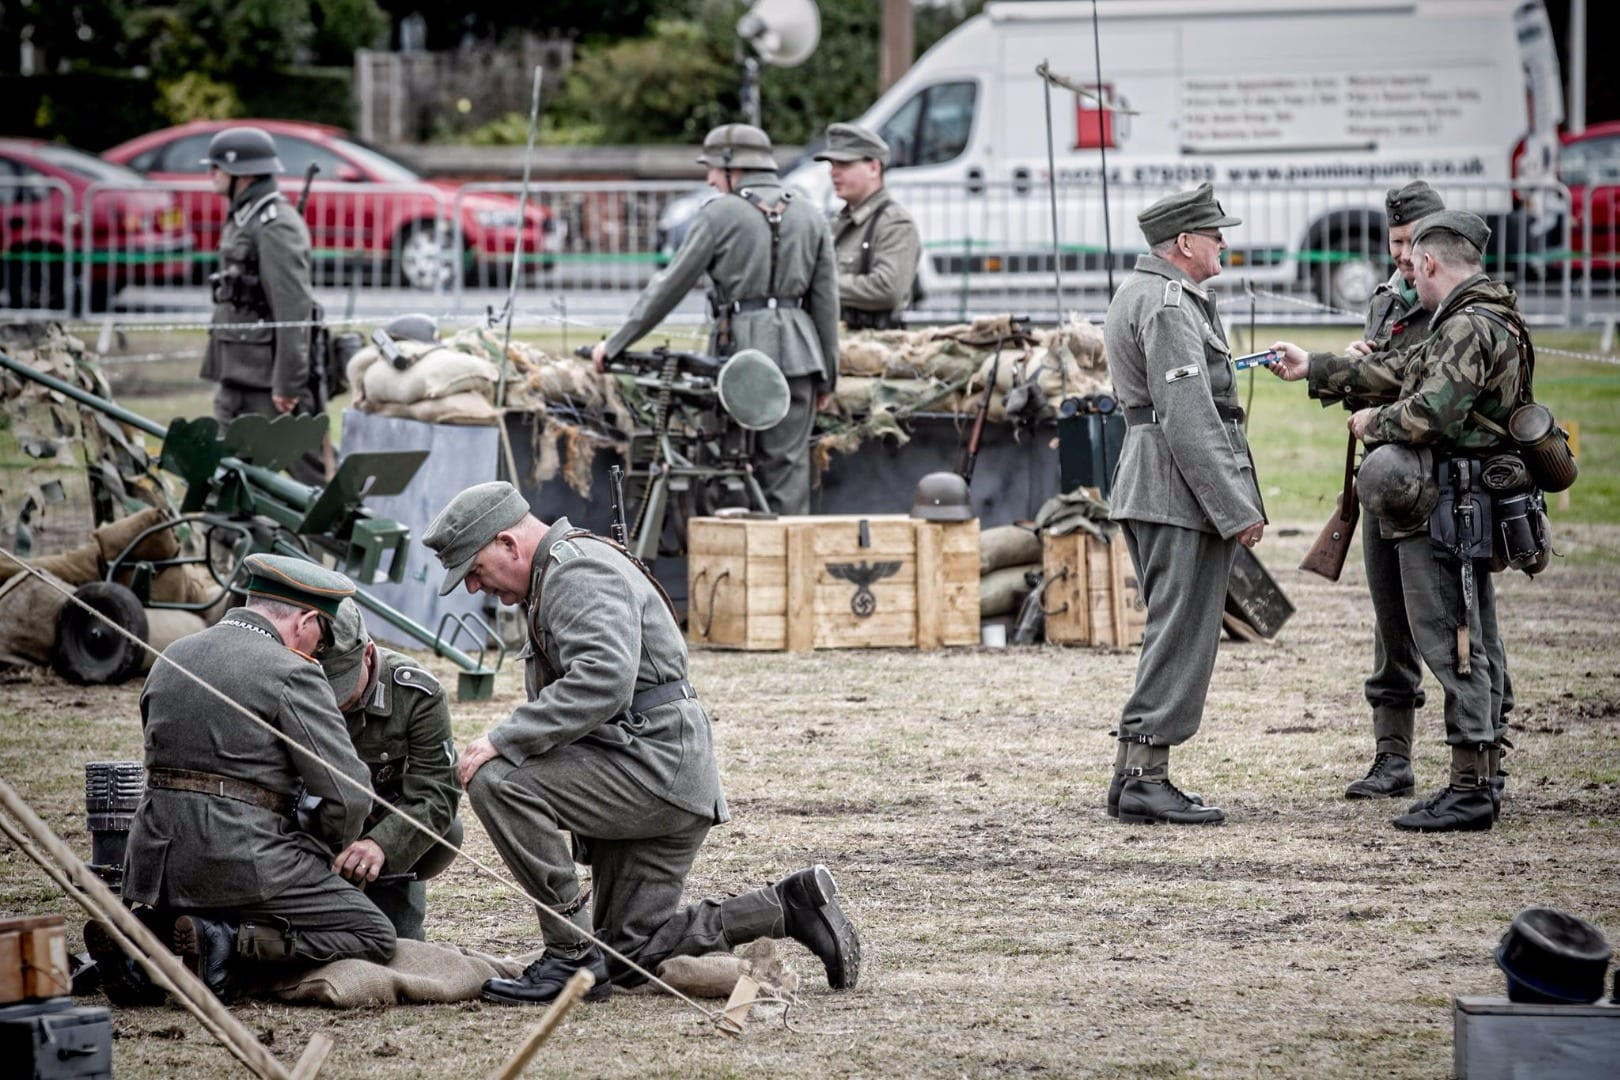 Lytham 1940's Wartime Weekend